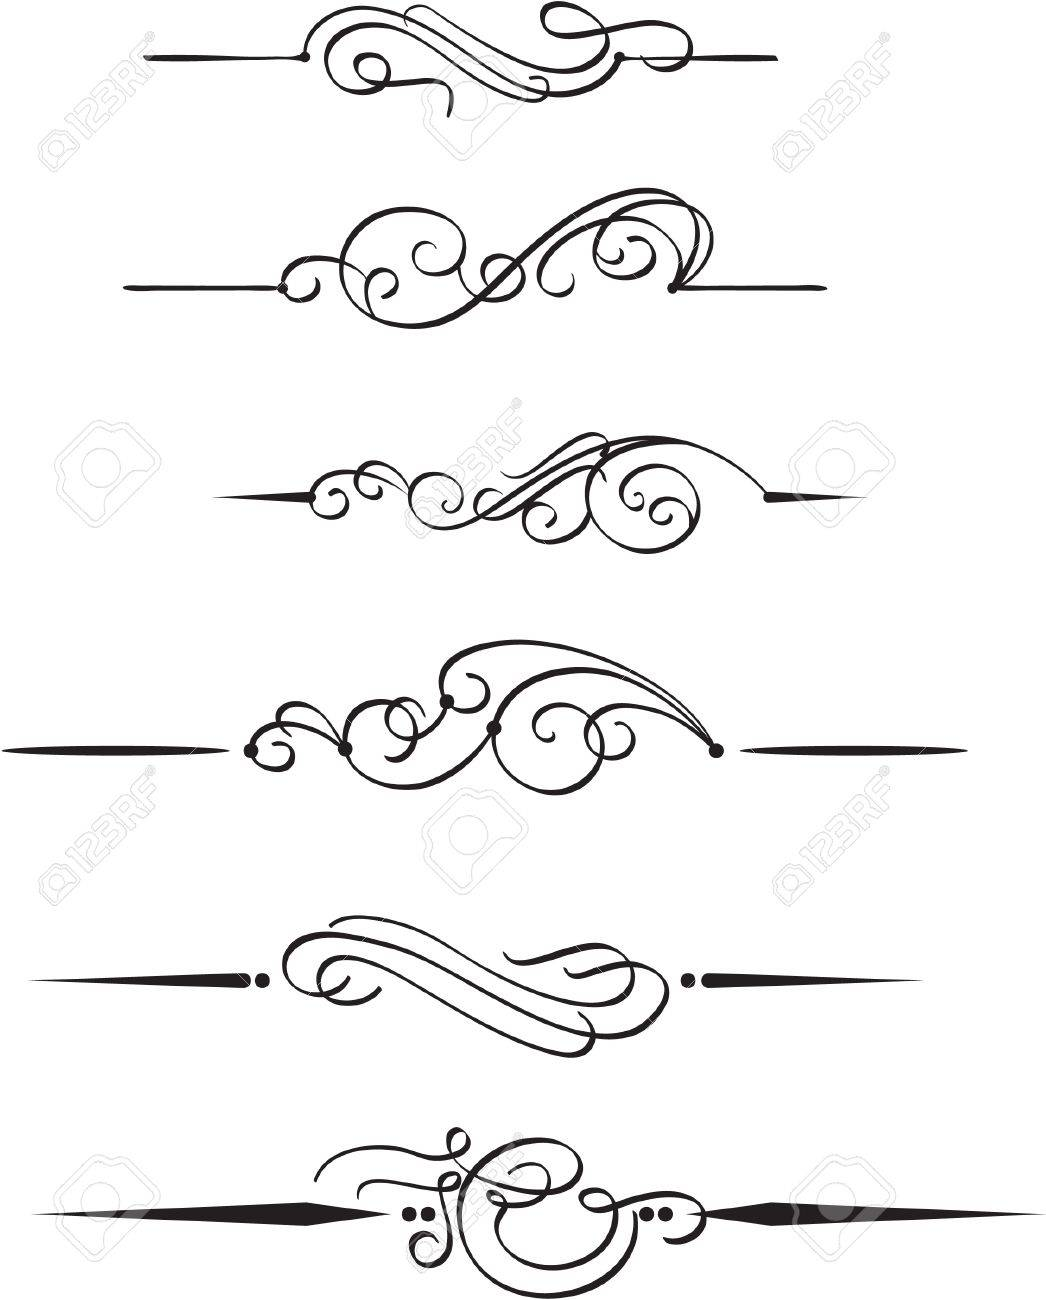 The set book design elements Stock Vector - 14335735